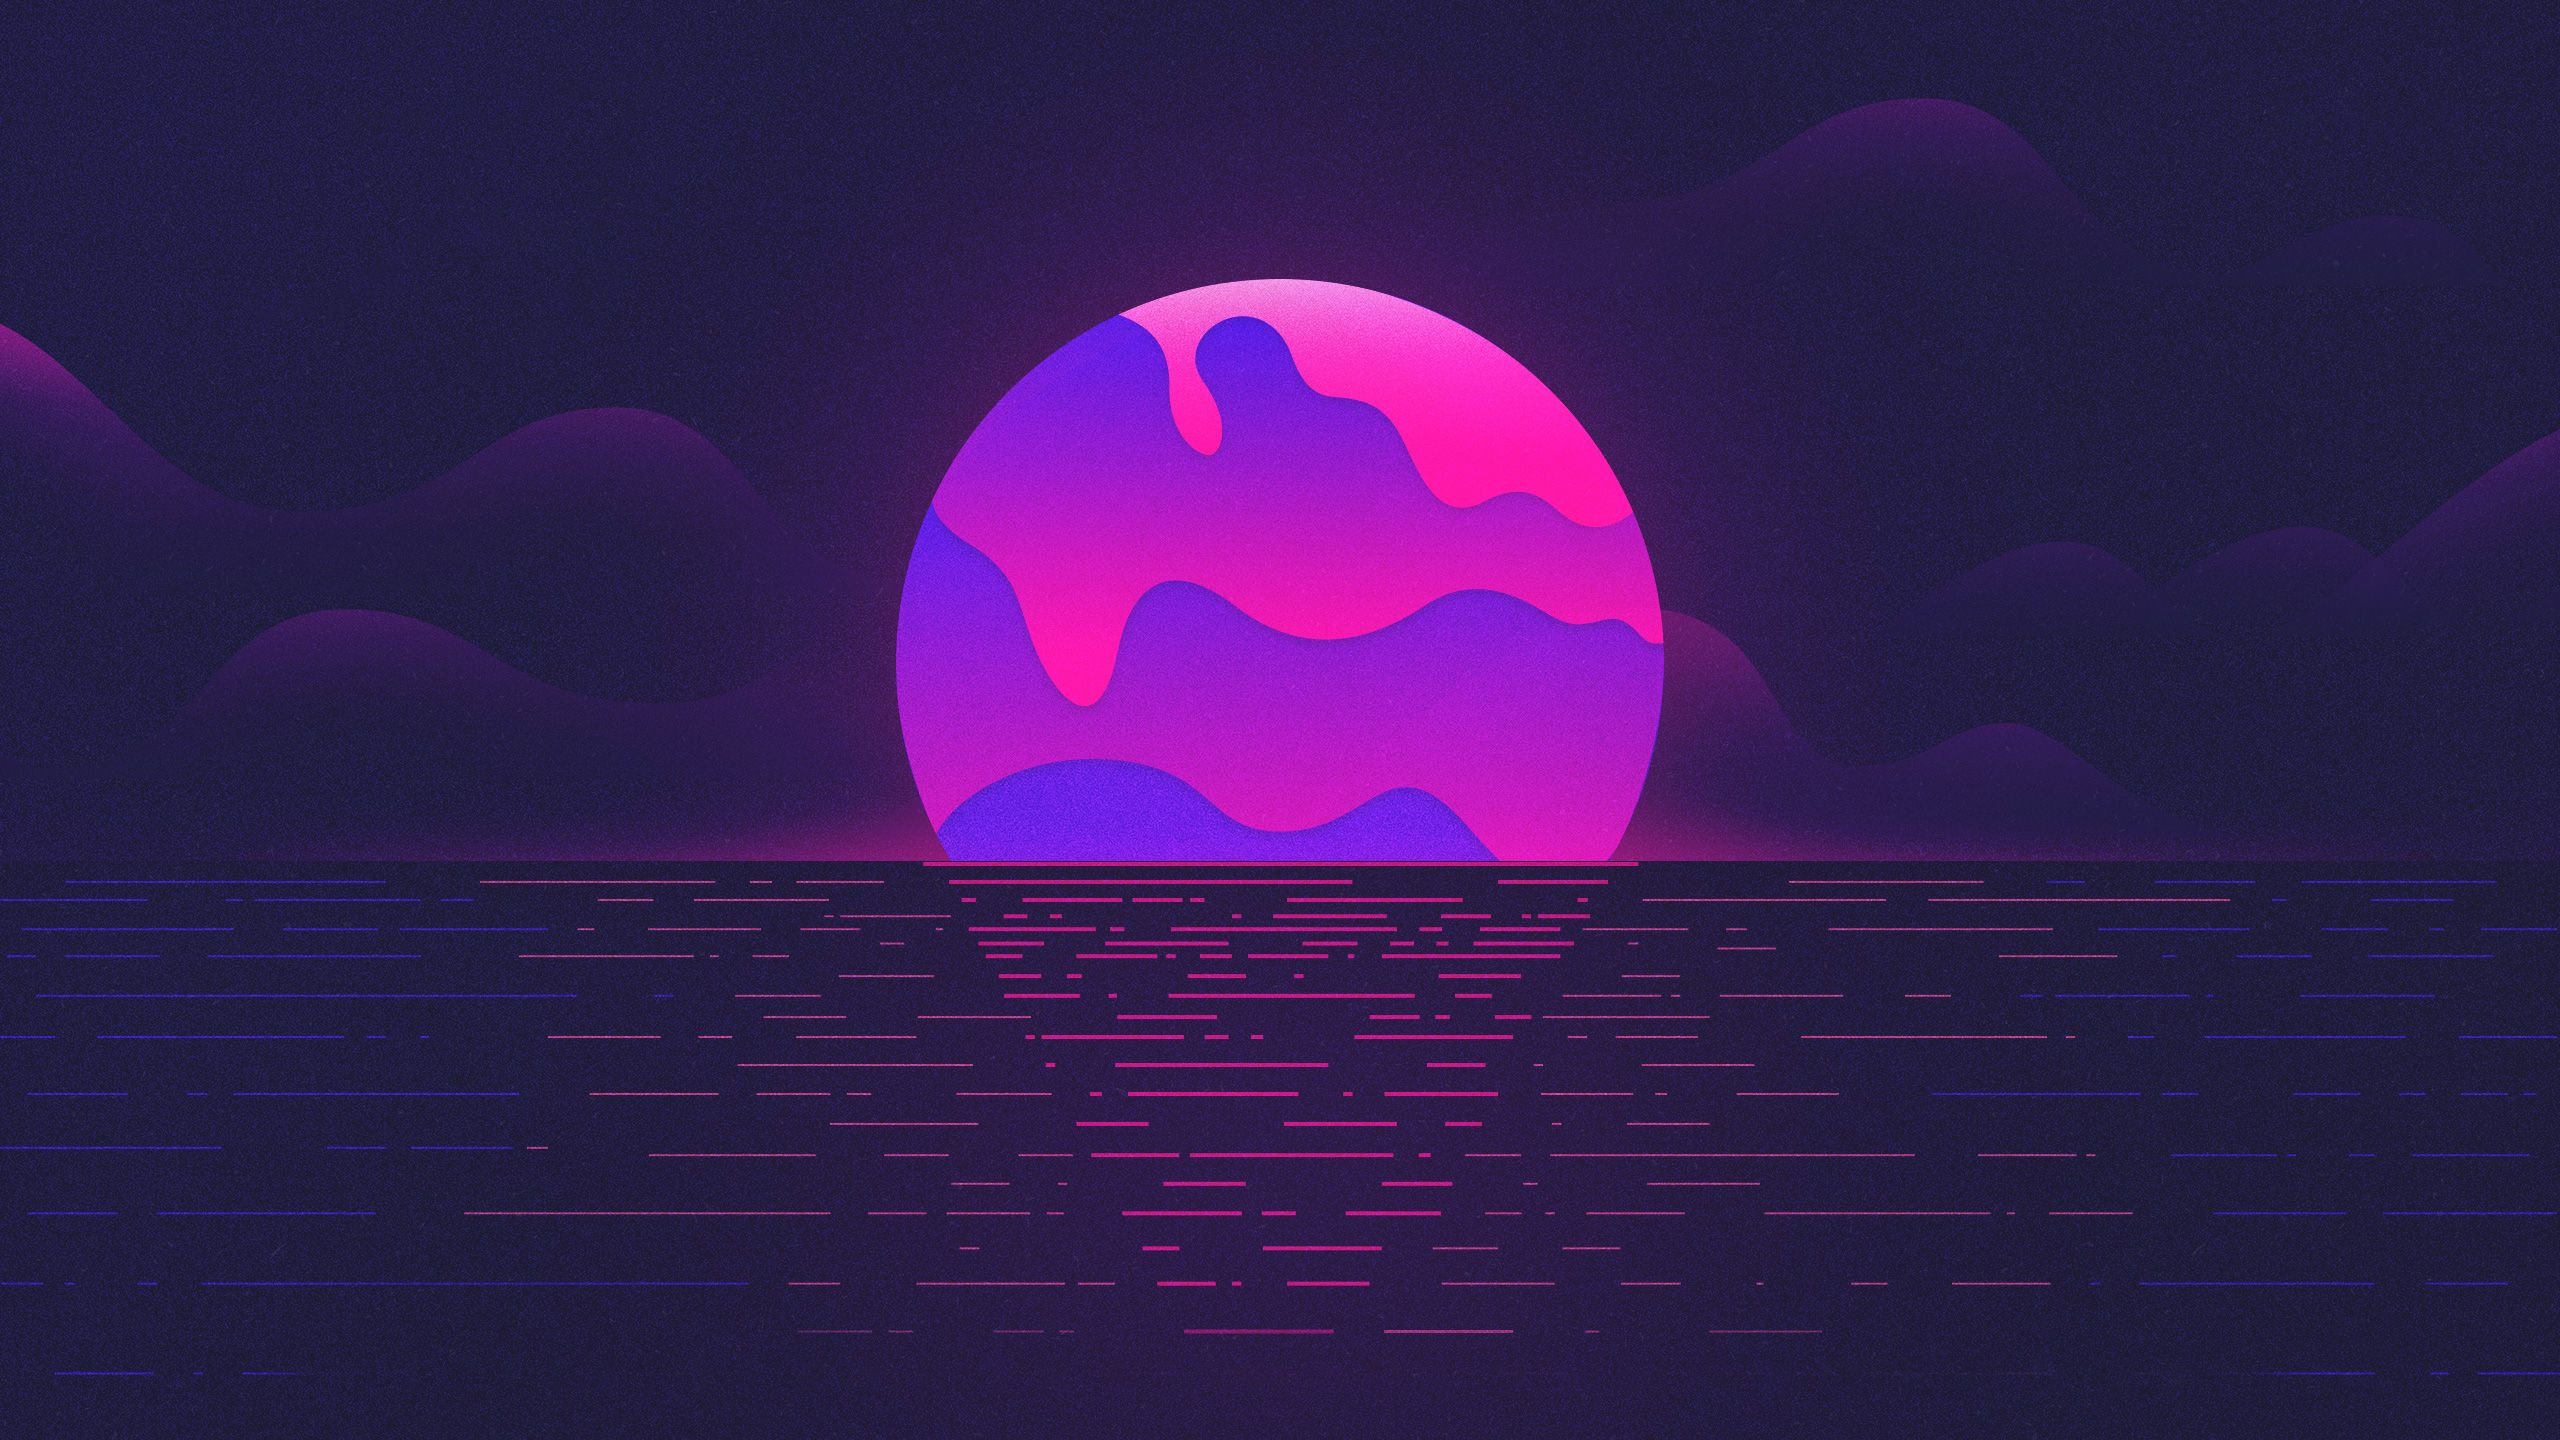 Aesthetic Vaporwave 2560x1440 Wallpapers Wallpaper Cave